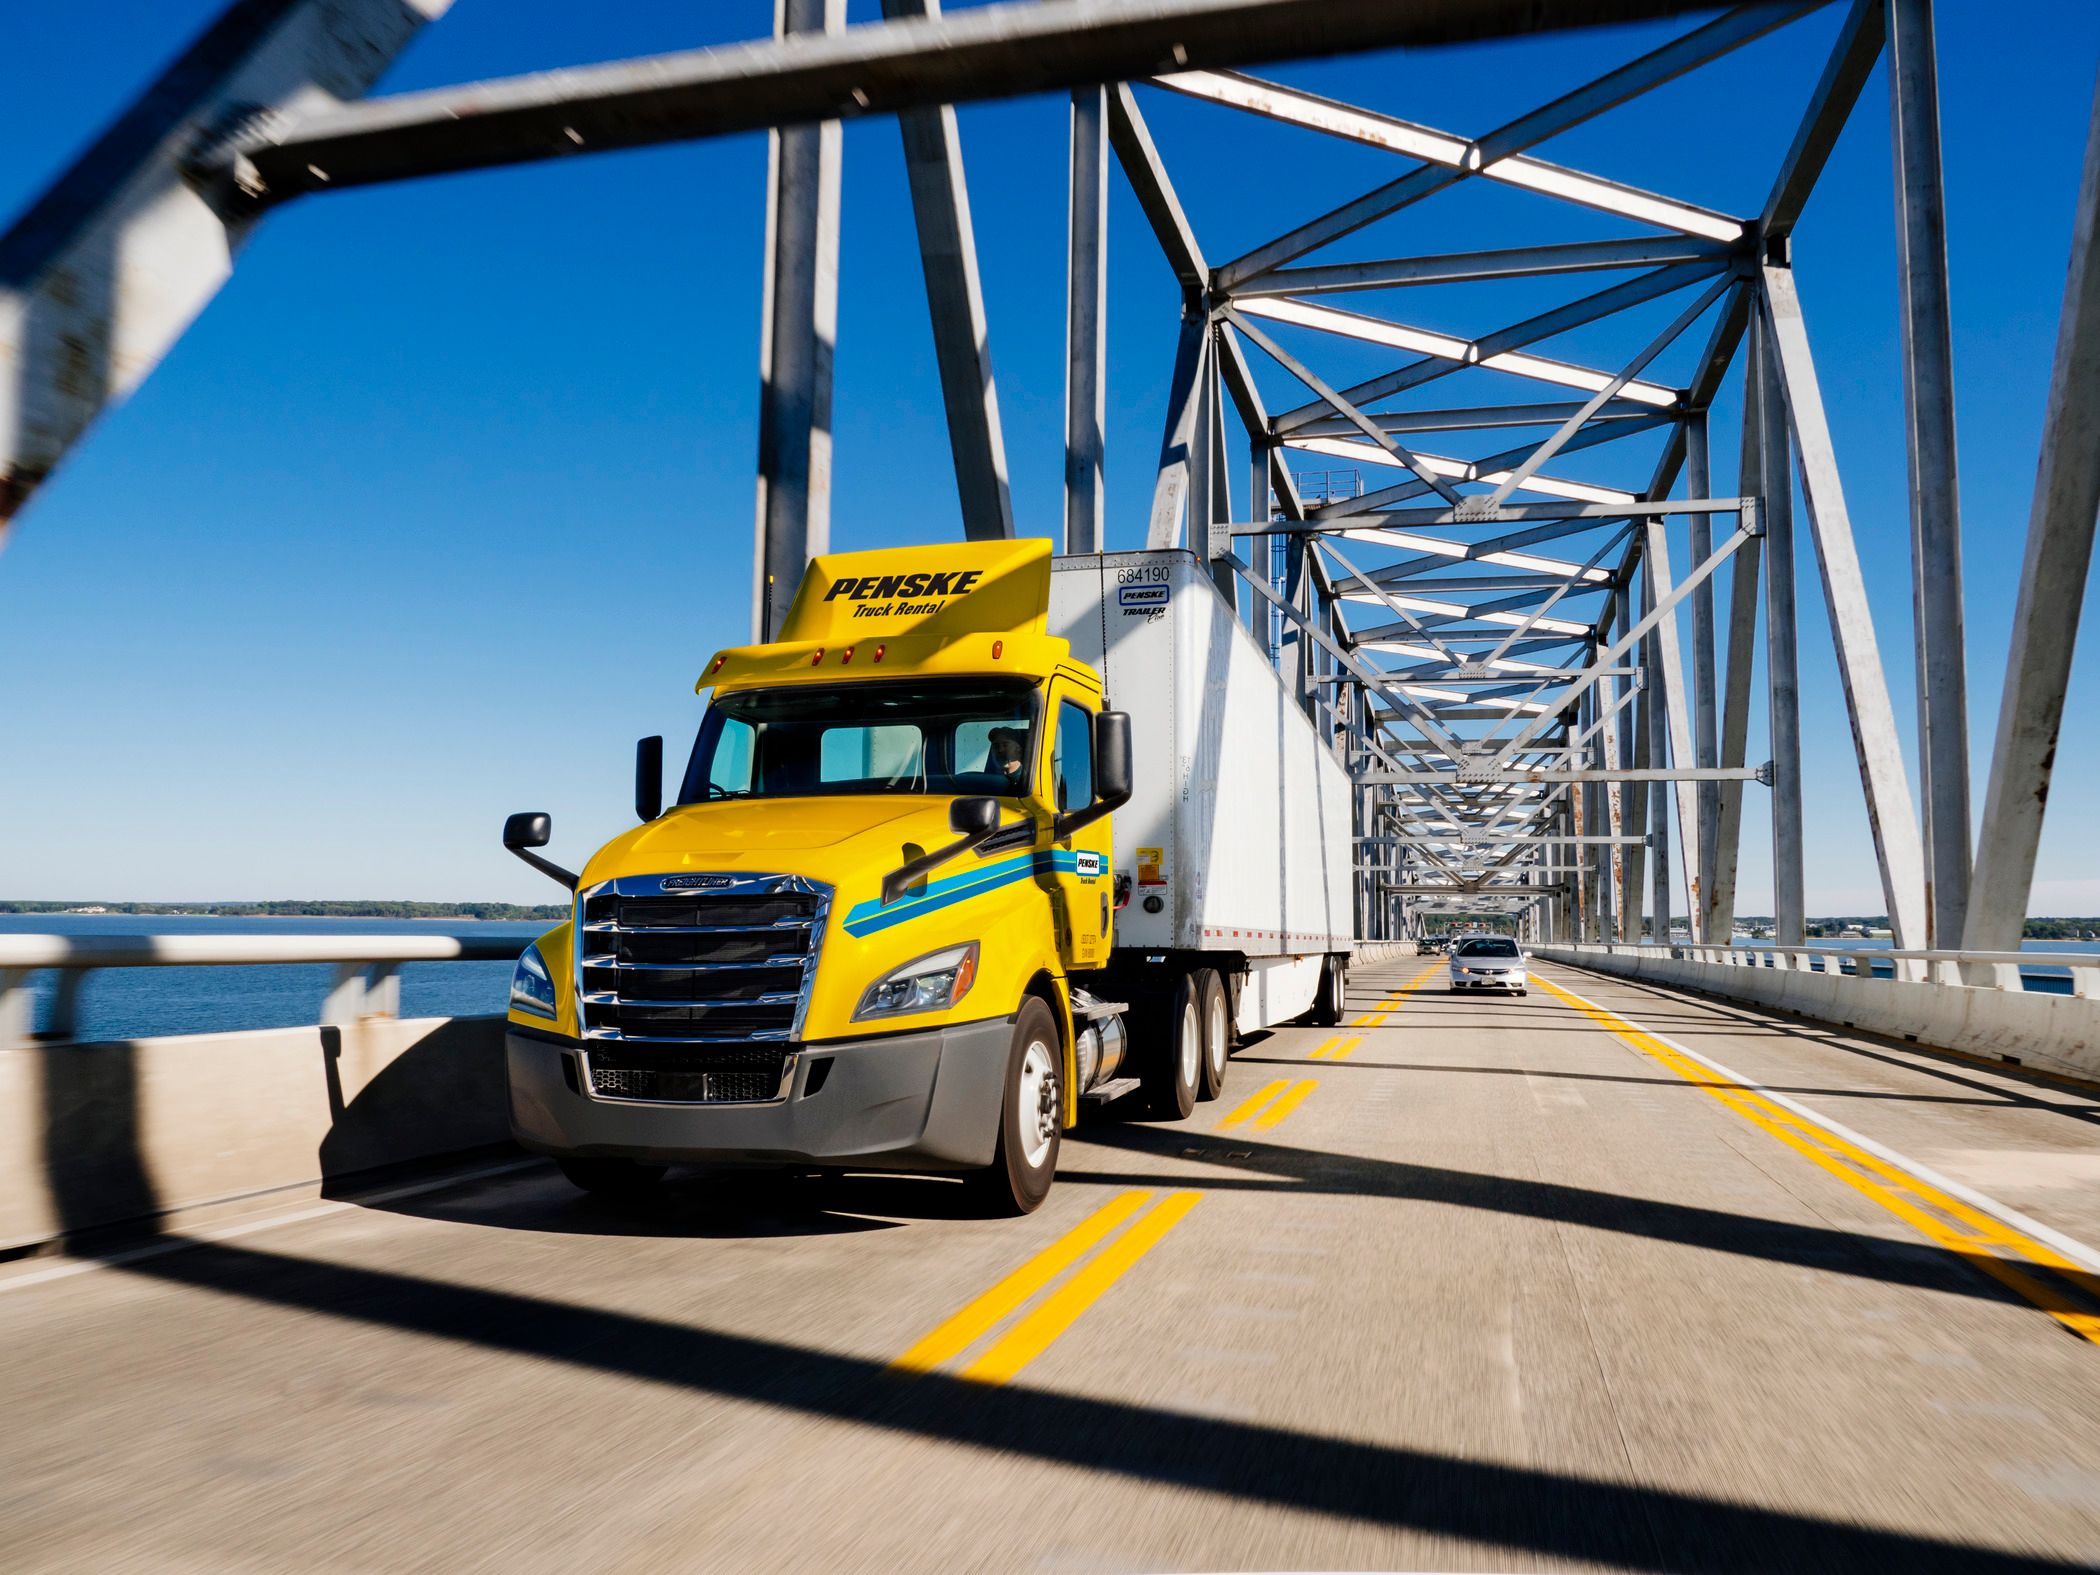 Penske's Truck Driver App Gets Major Upgrade Ahead of Holiday Freight Season